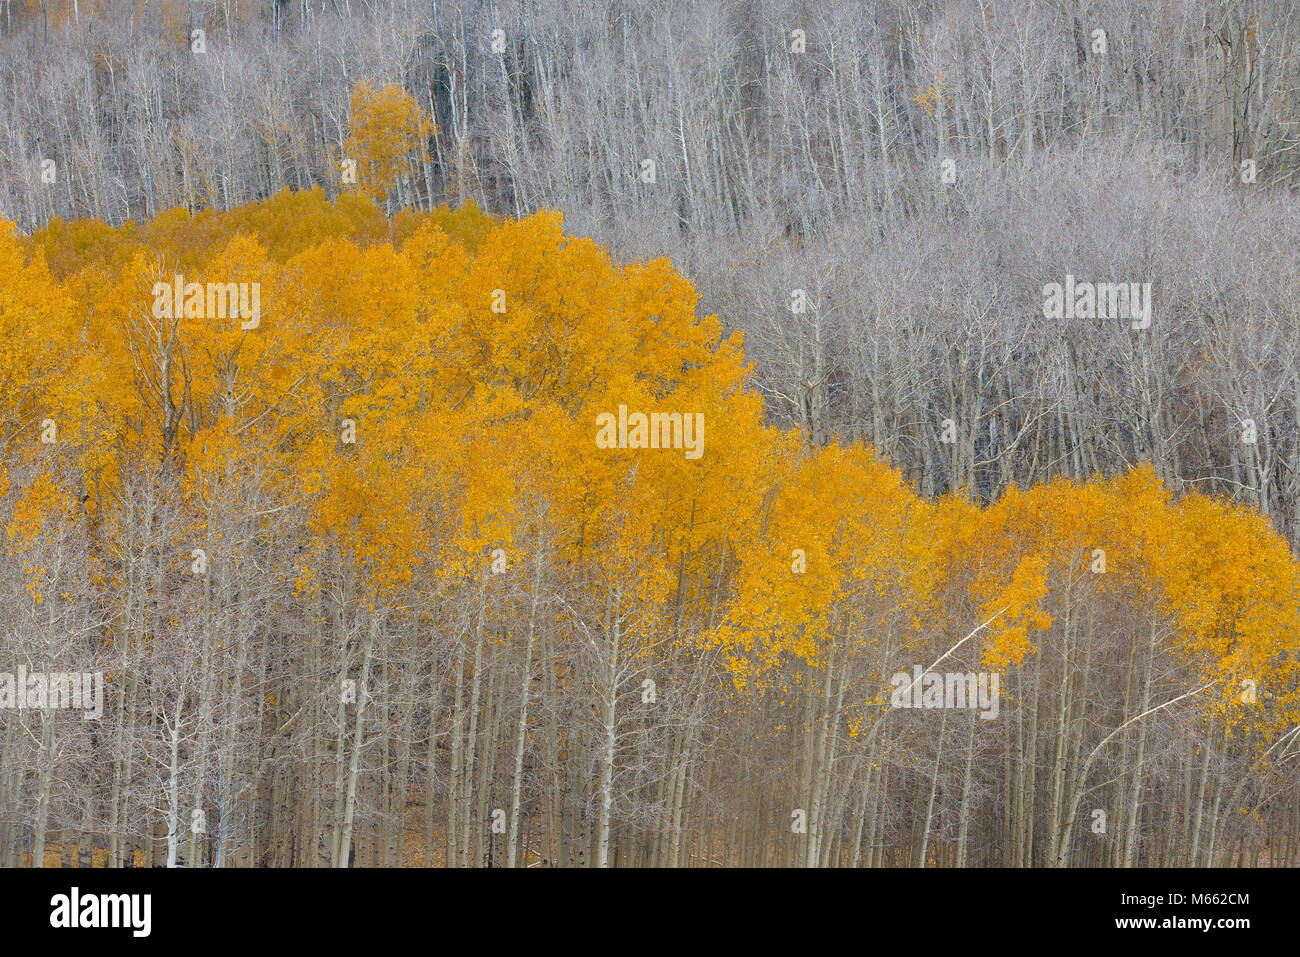 Aspen, Populus tremula, Boulder Mountain, Dixie National Forest, Utah Immagini Stock